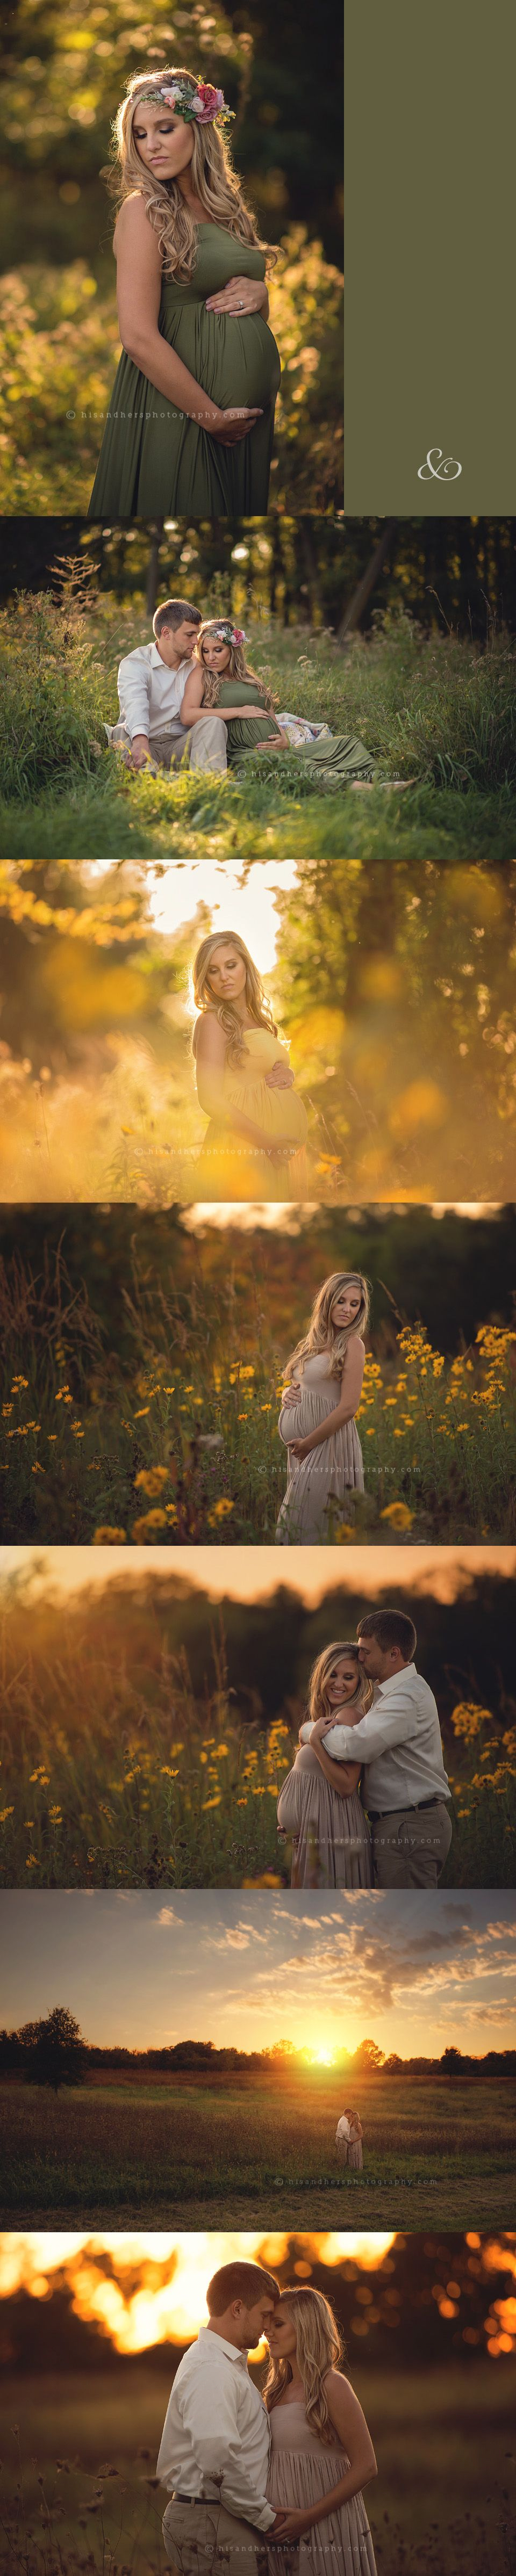 iowa maternity pregnancy photographer photography expecting mother pictures